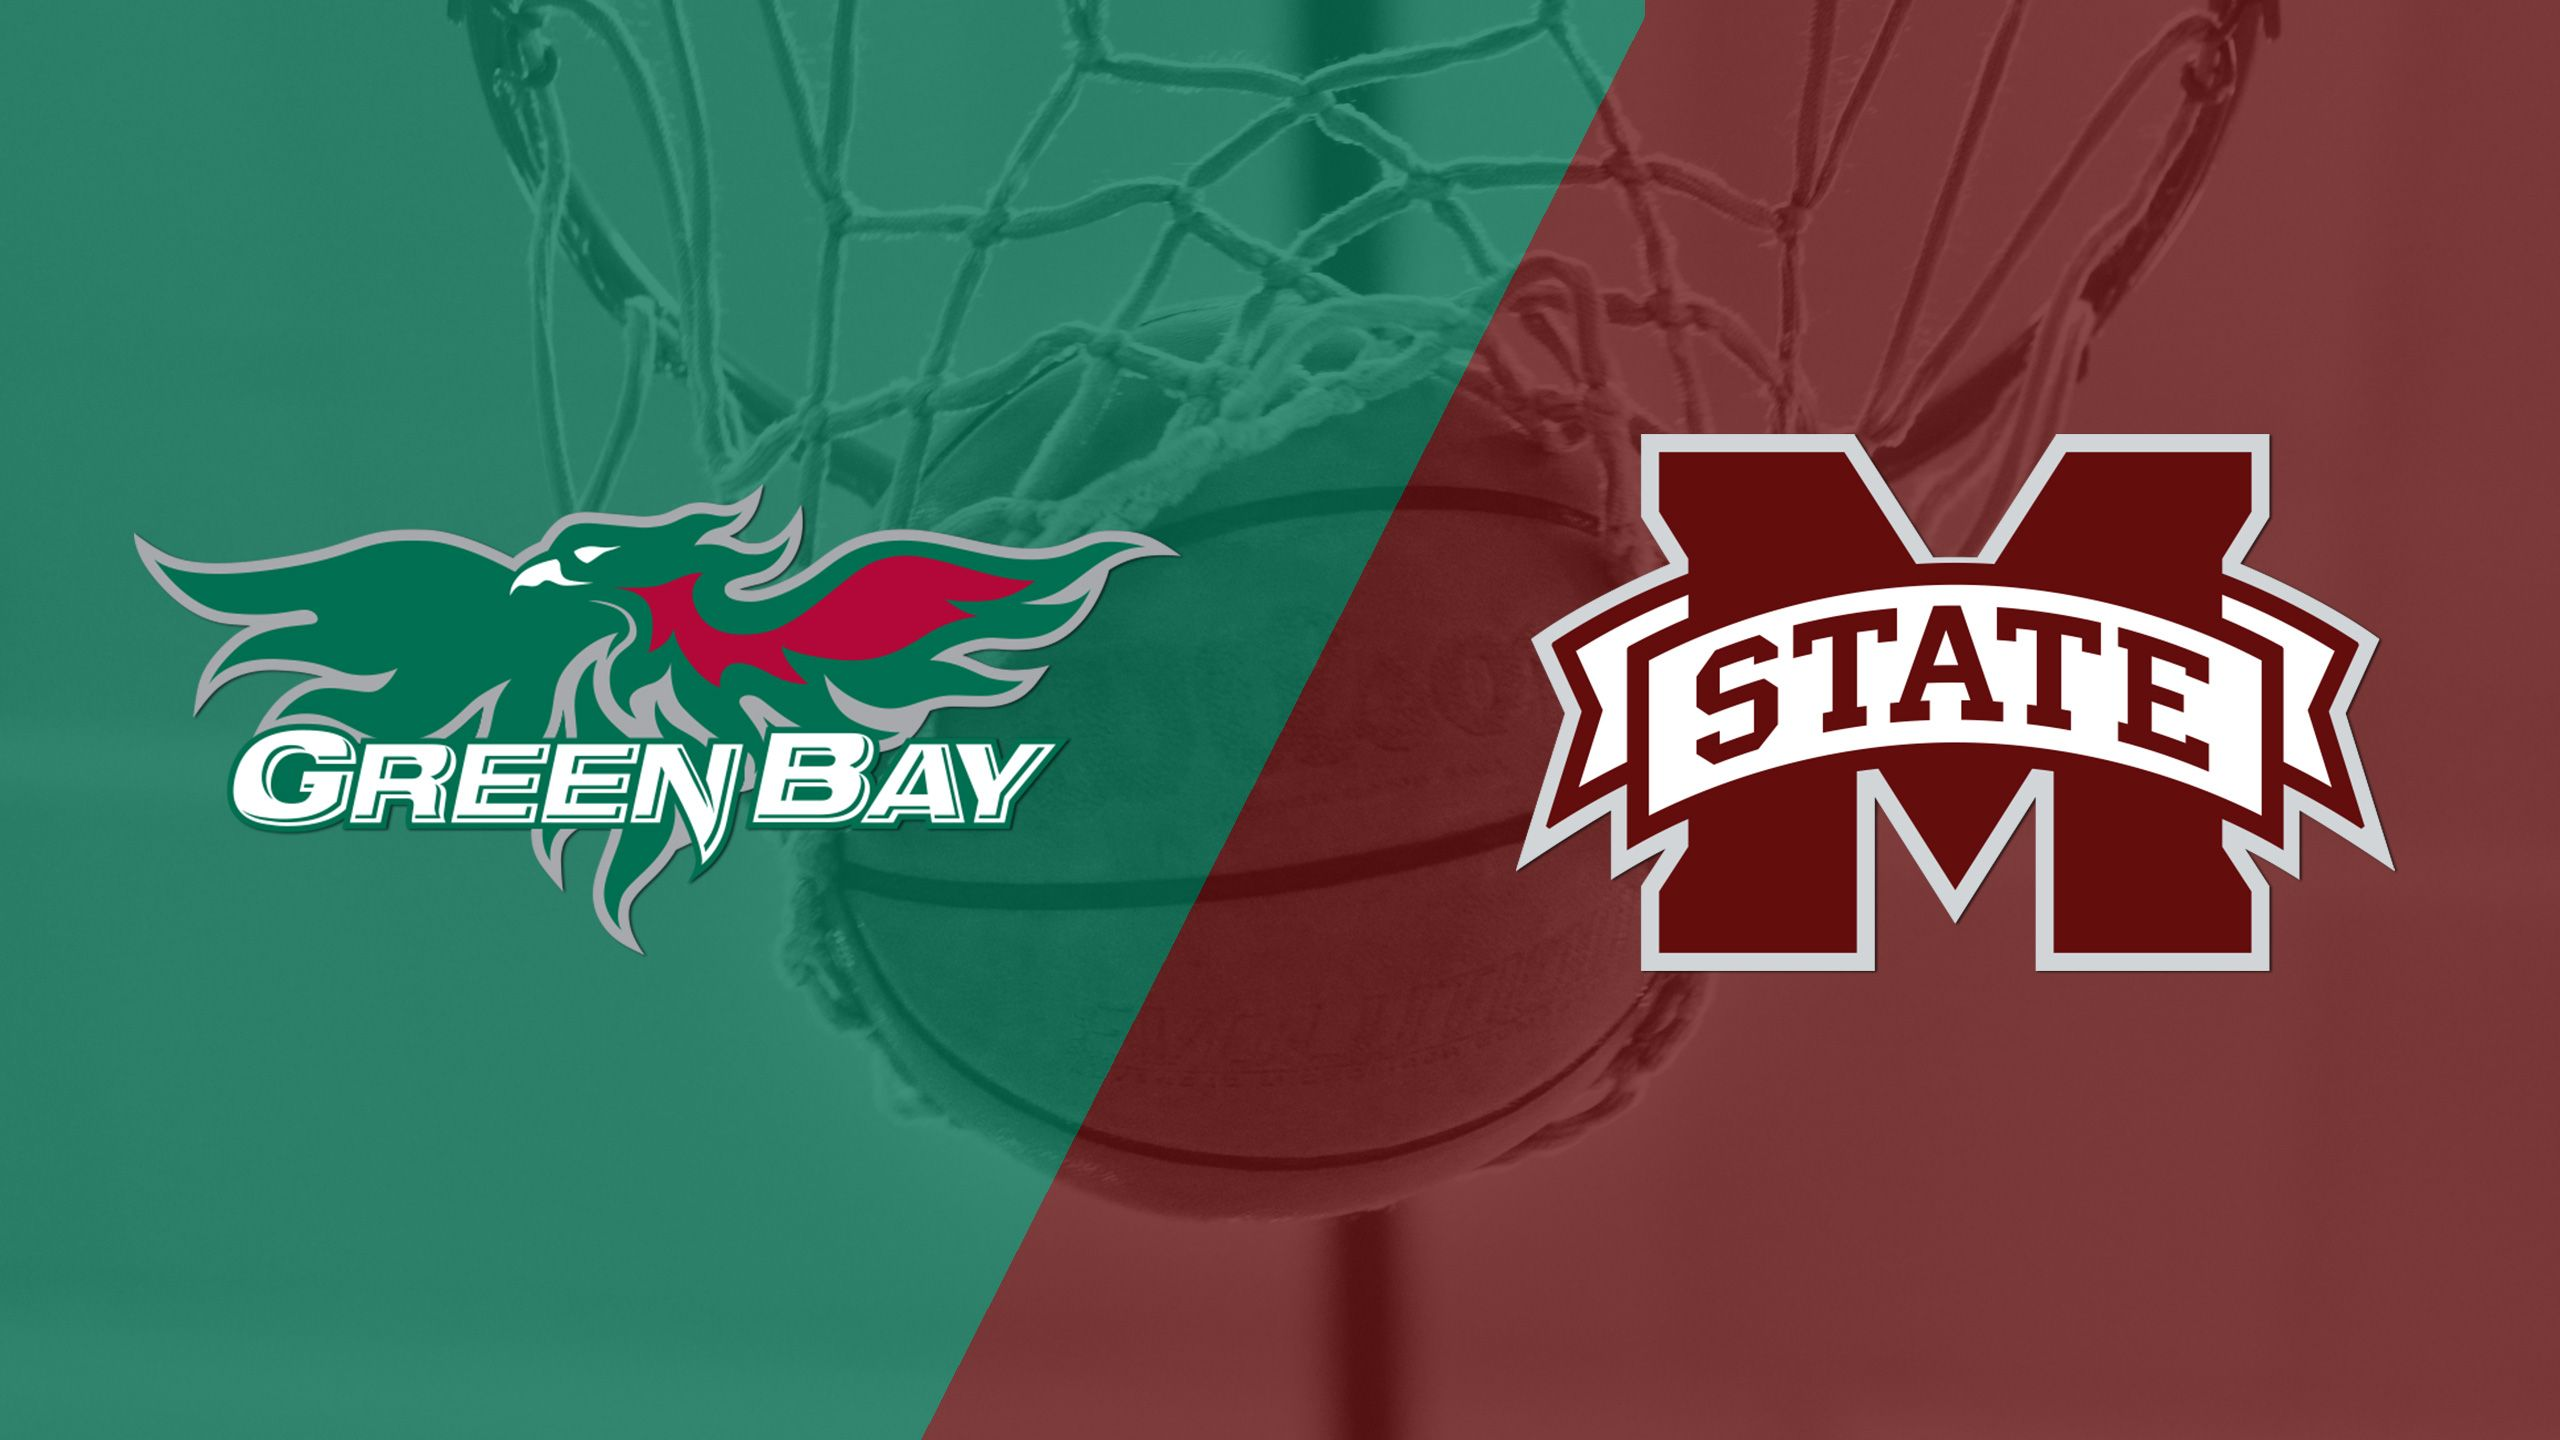 Wisconsin-Green Bay vs. Mississippi State (M Basketball)